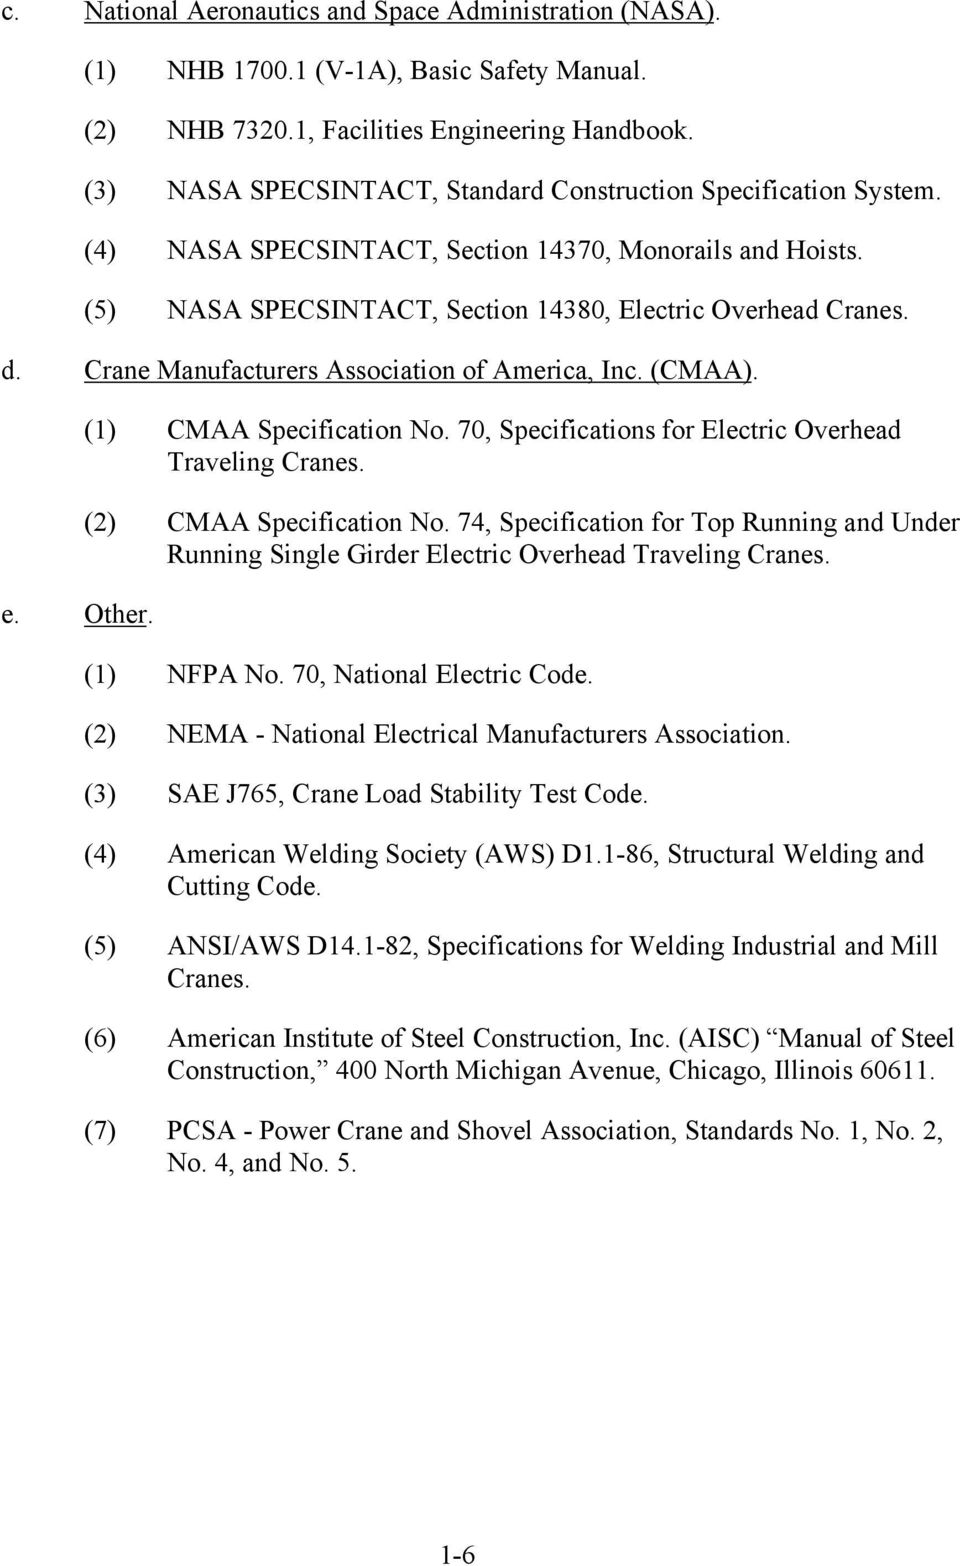 Crane Manufacturers Association of America, Inc. (CMAA). e. Other. (1) CMAA Specification No. 70, Specifications for Electric Overhead Traveling Cranes. (2) CMAA Specification No.